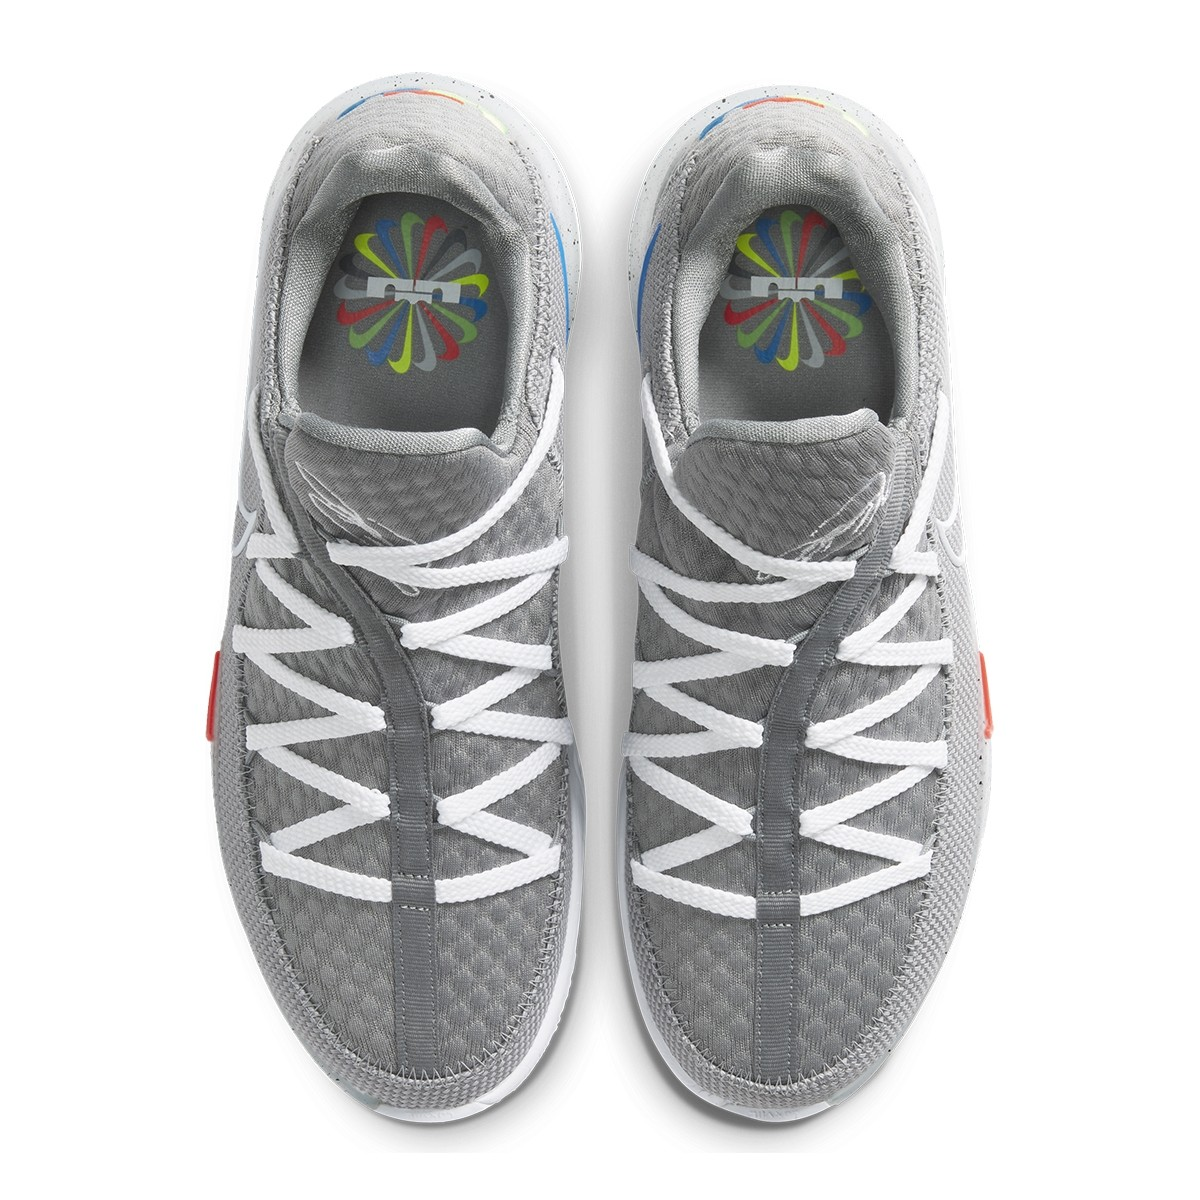 Nike Lebron XVII Low 'Particle Grey'-CD5007-004